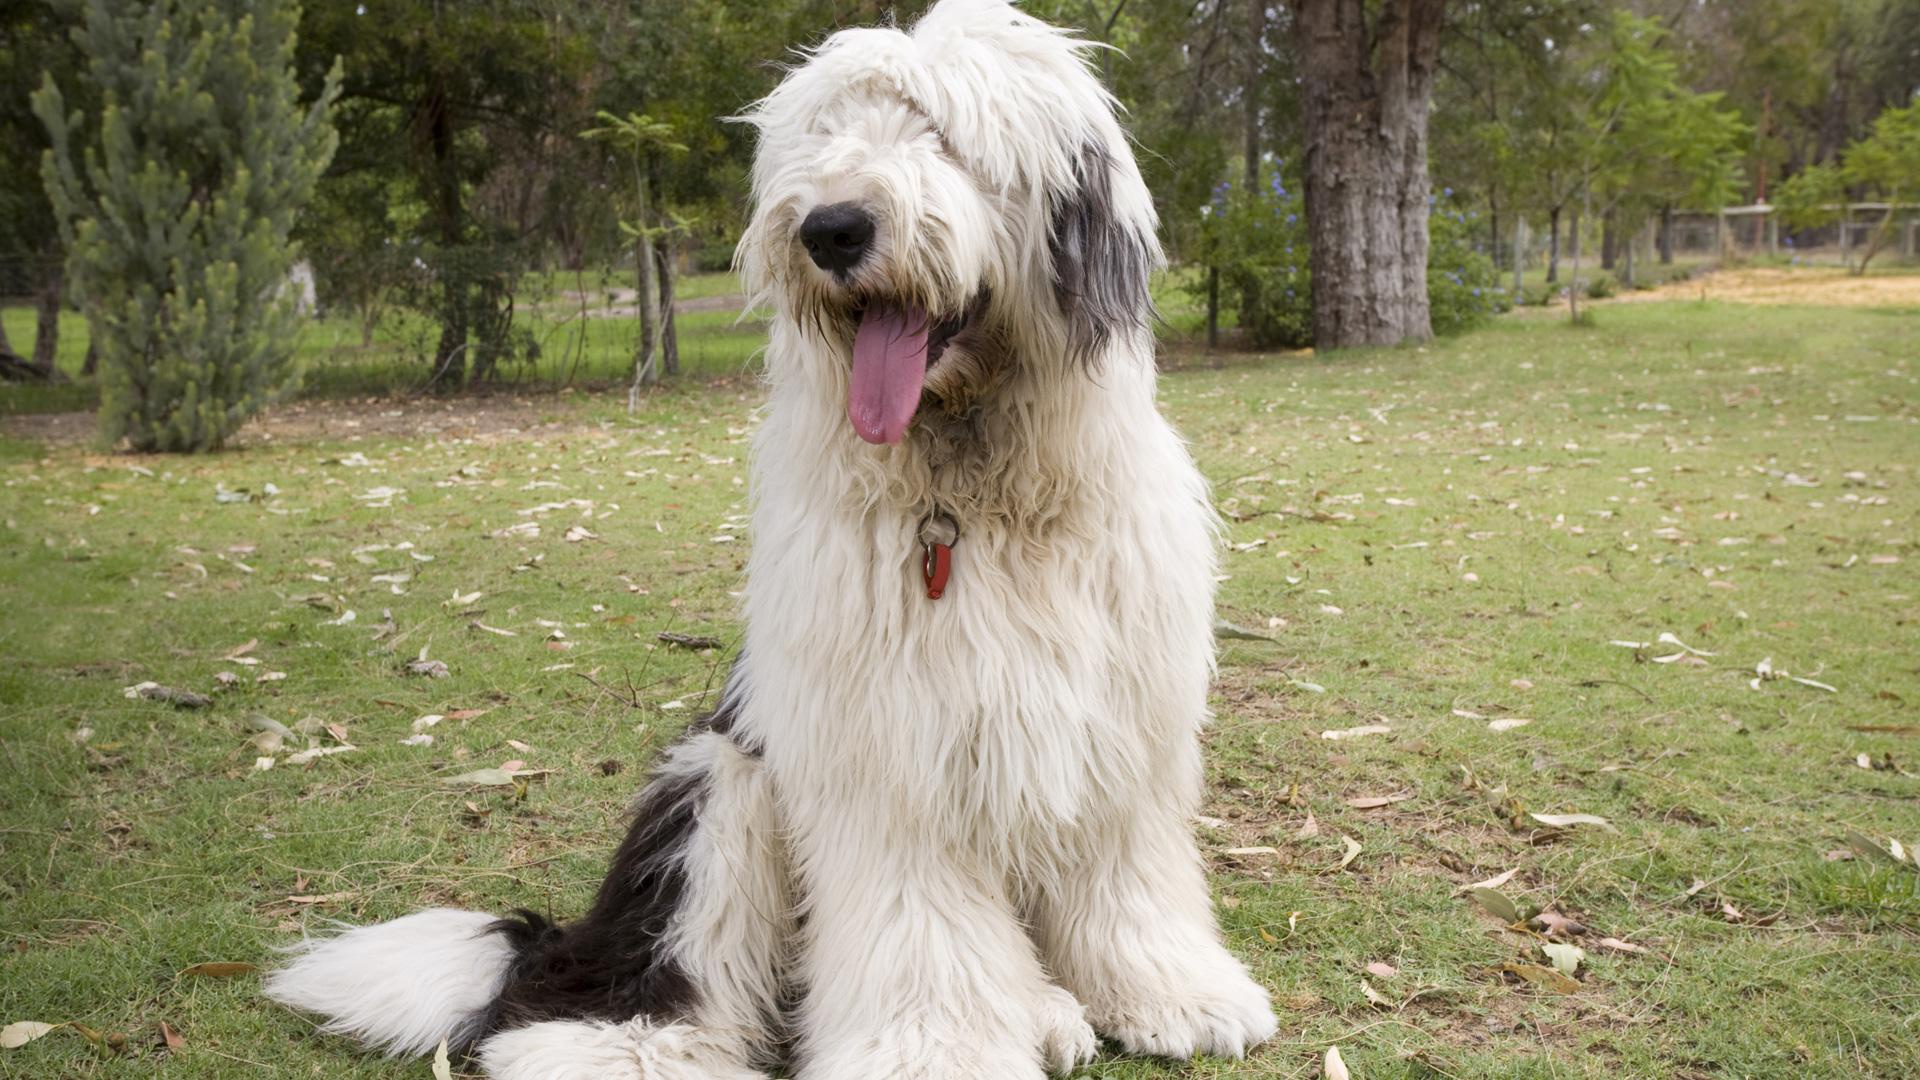 Meet the breed: Old English Sheepdog